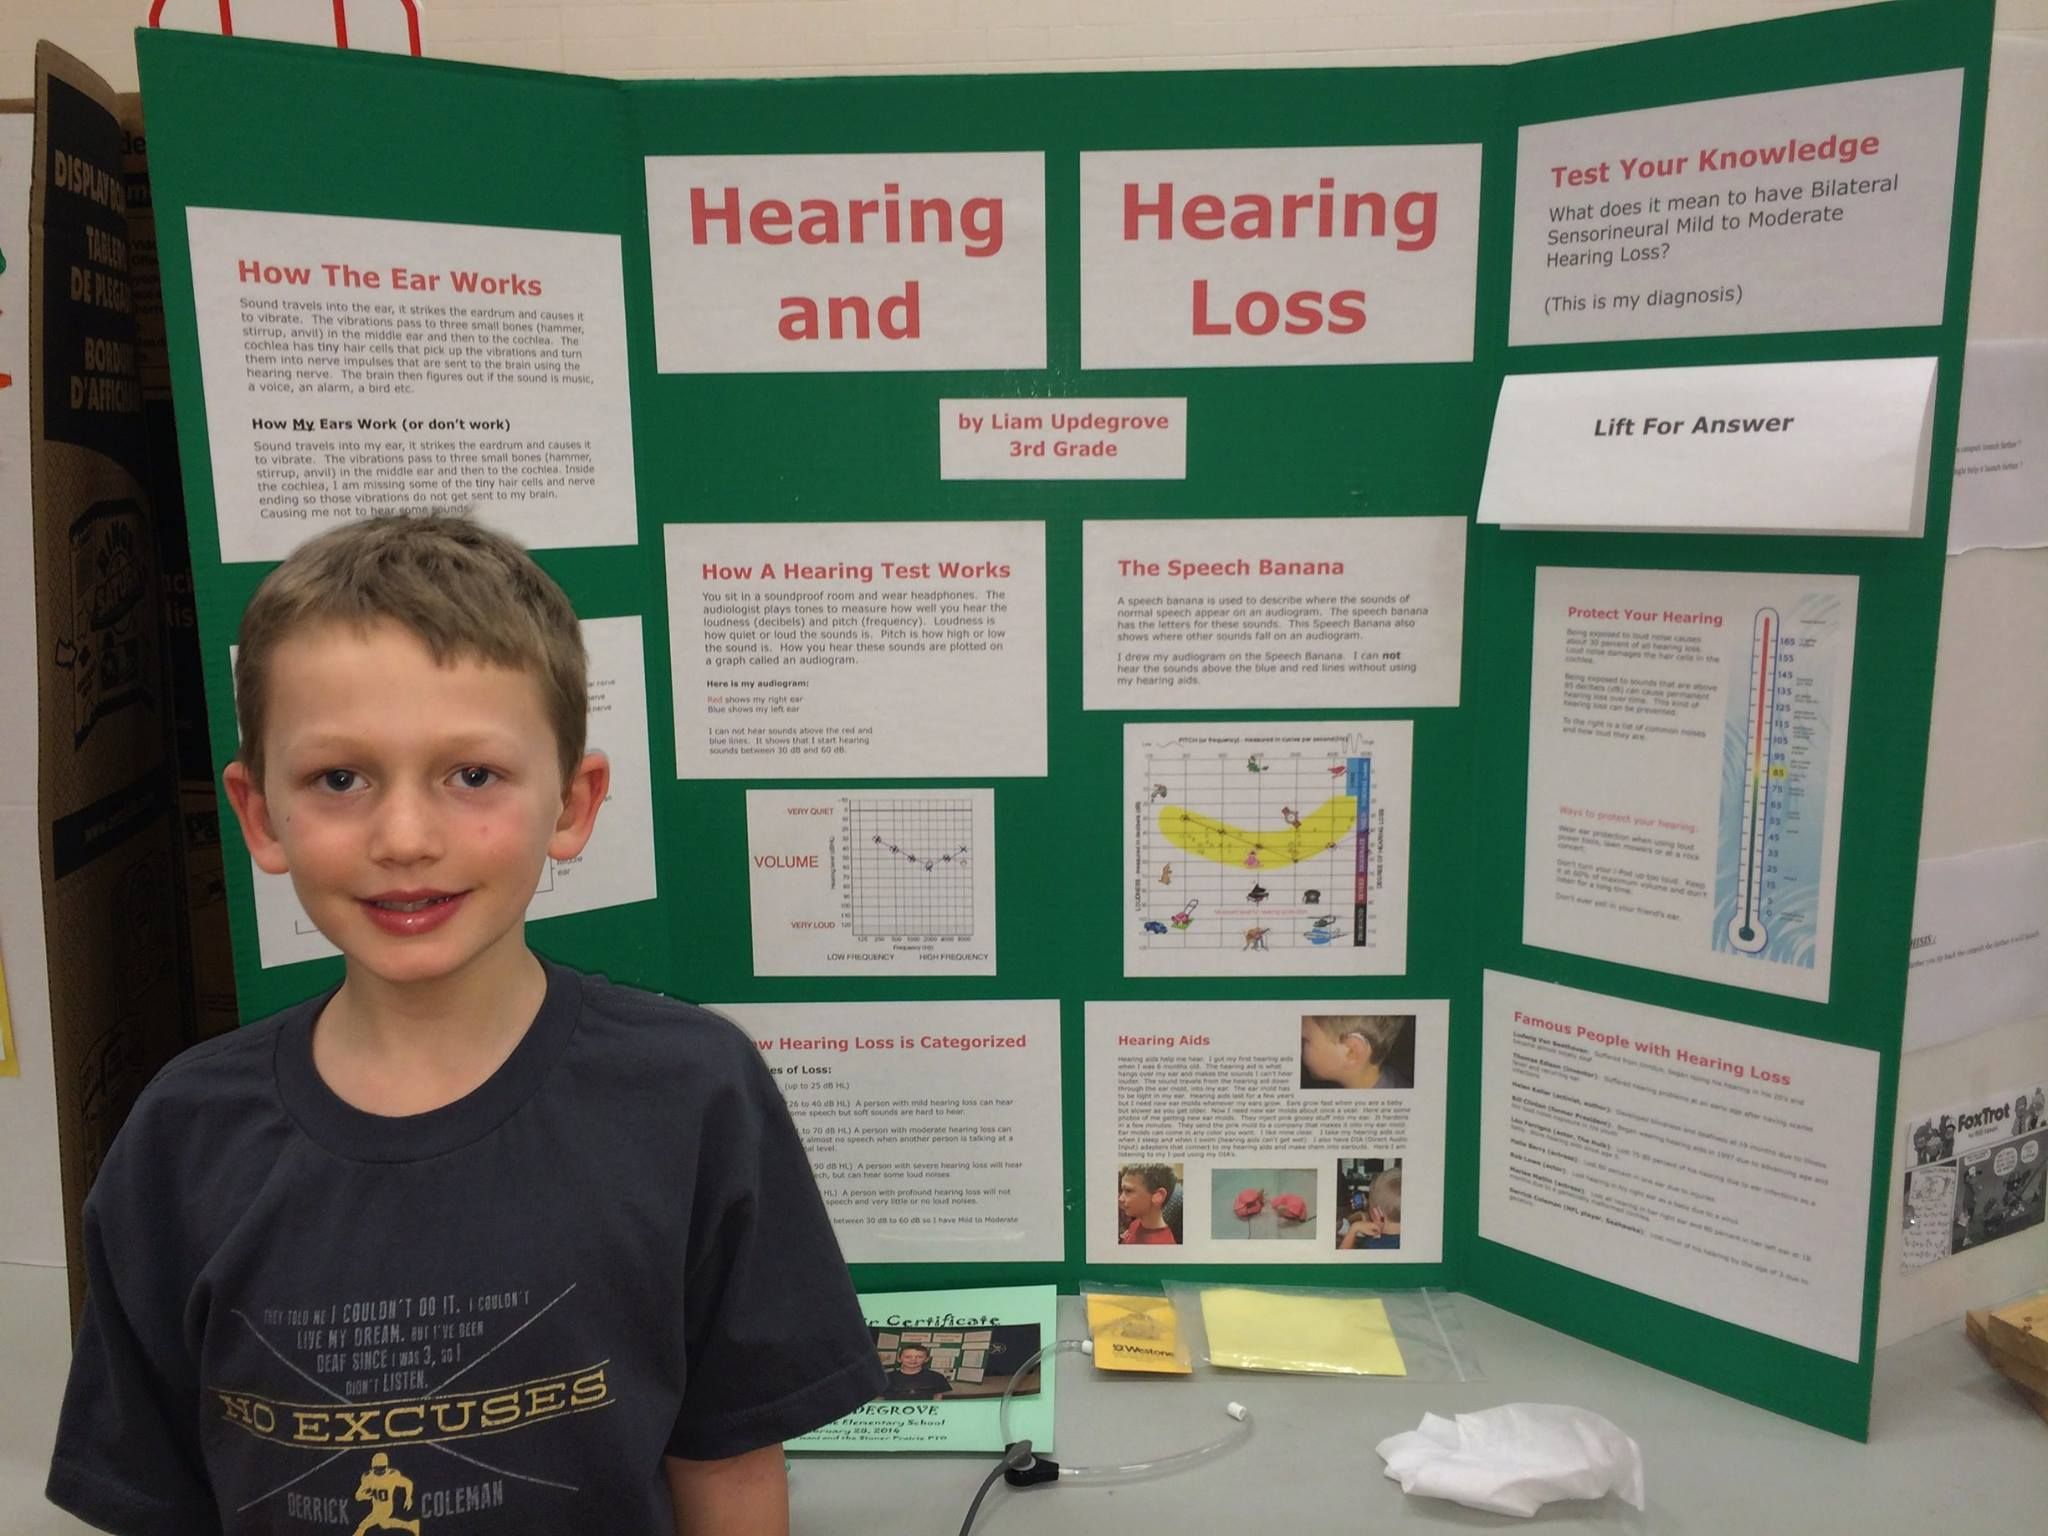 Hearing Loss Science Project